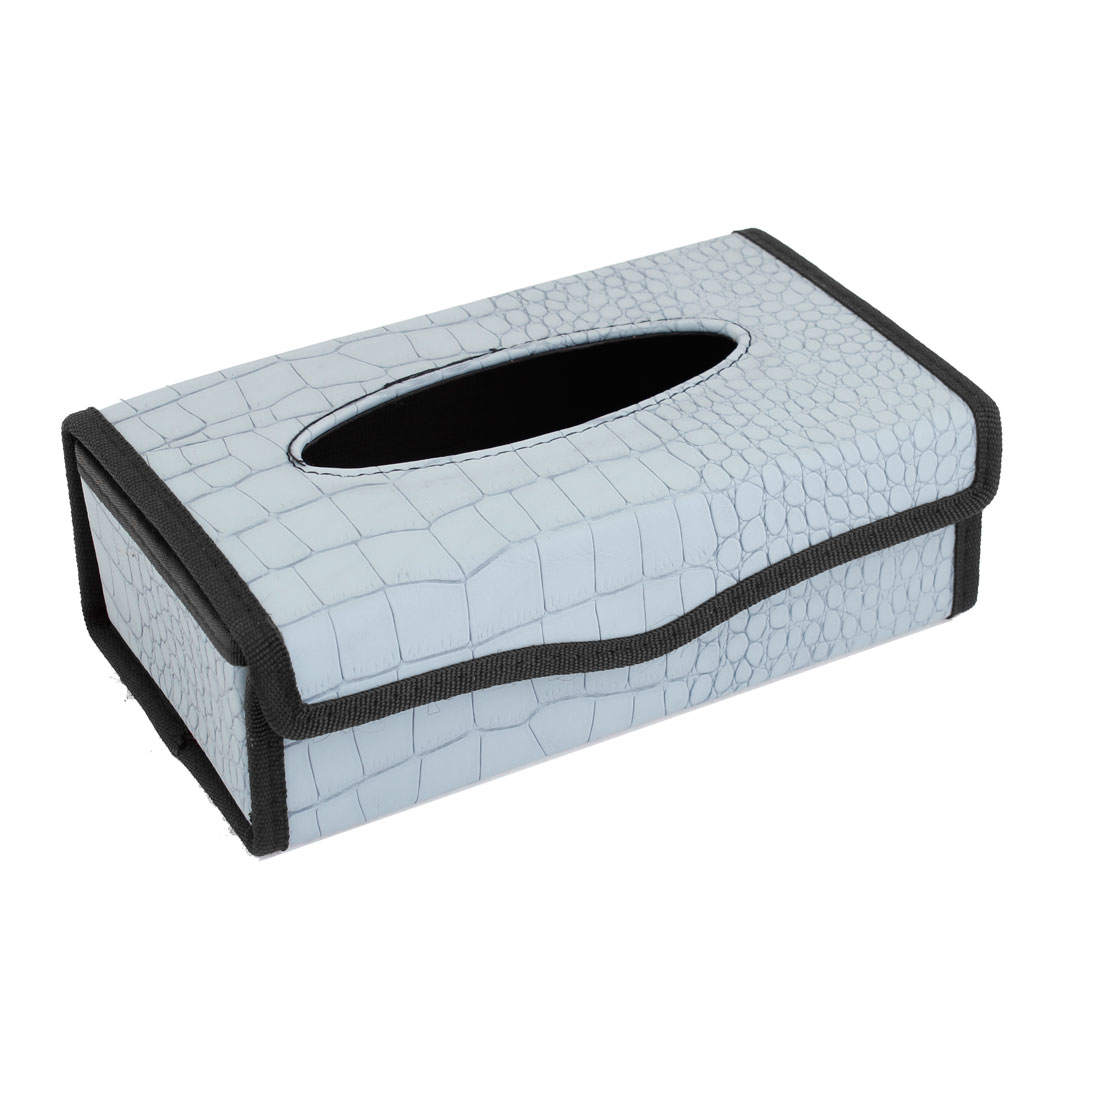 Faux Leather Crocodile Pattern Tissue Box Holder Blue Black for Car Autos